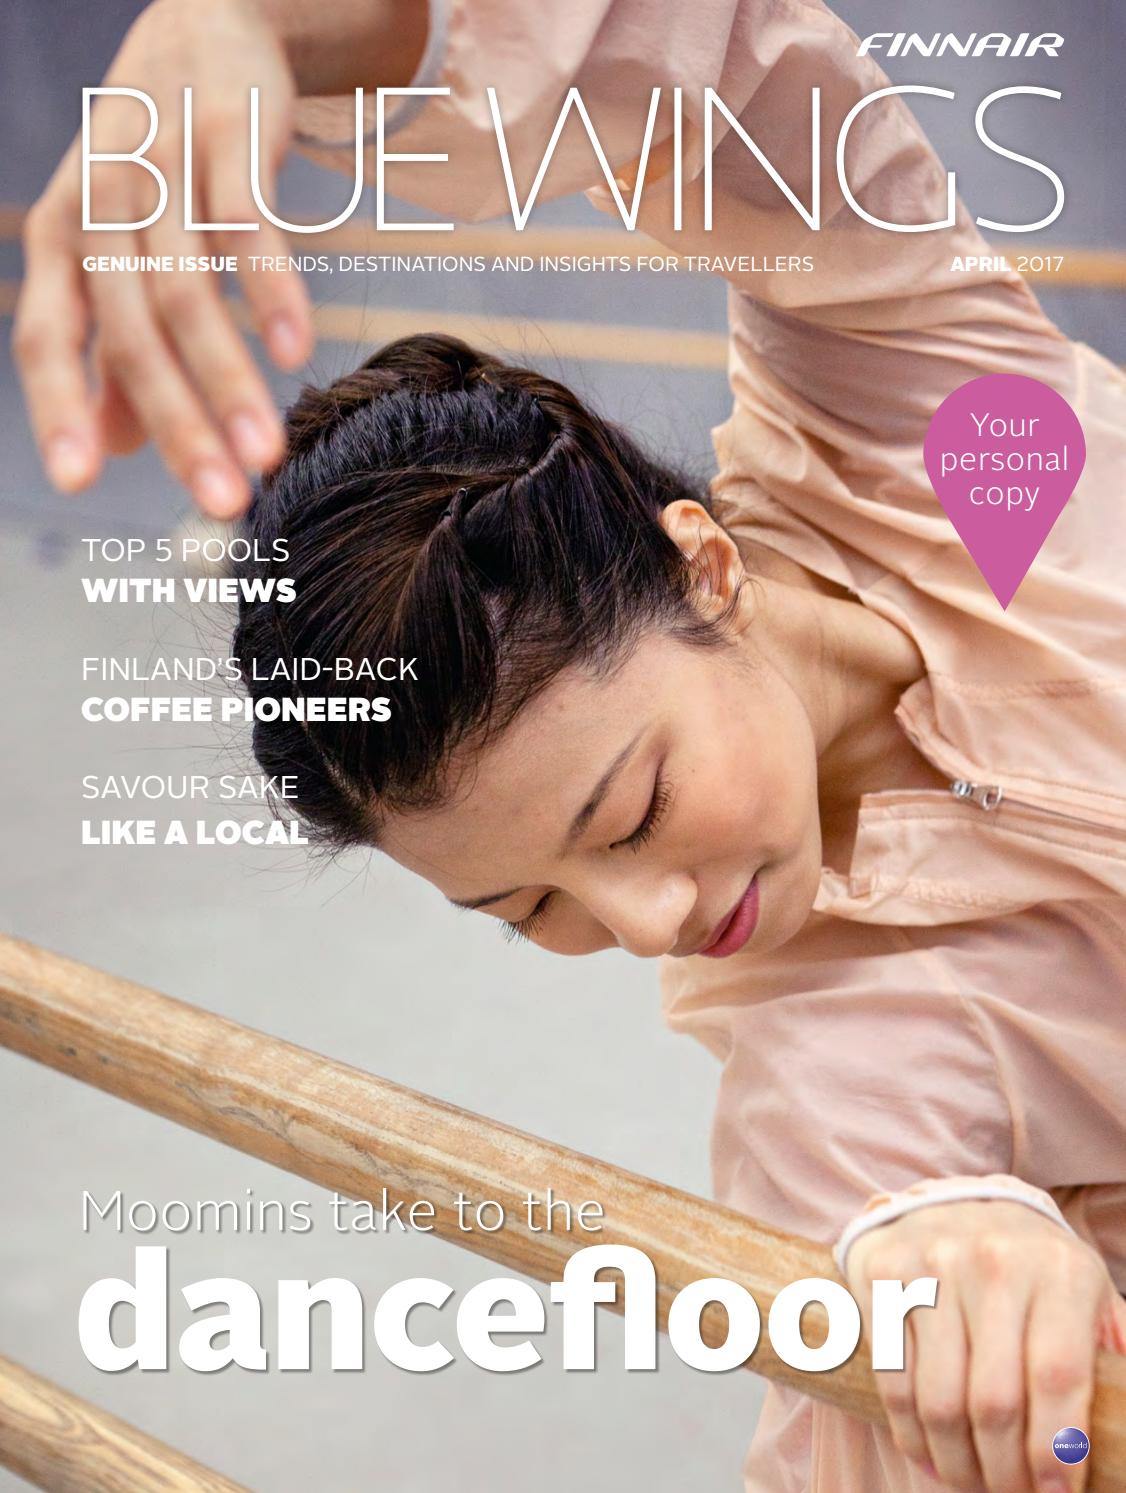 Blue Wings Genuine Issue April 2017 By Finnair Bluewings Issuu Singapore Of Time Show 1940 Voucher